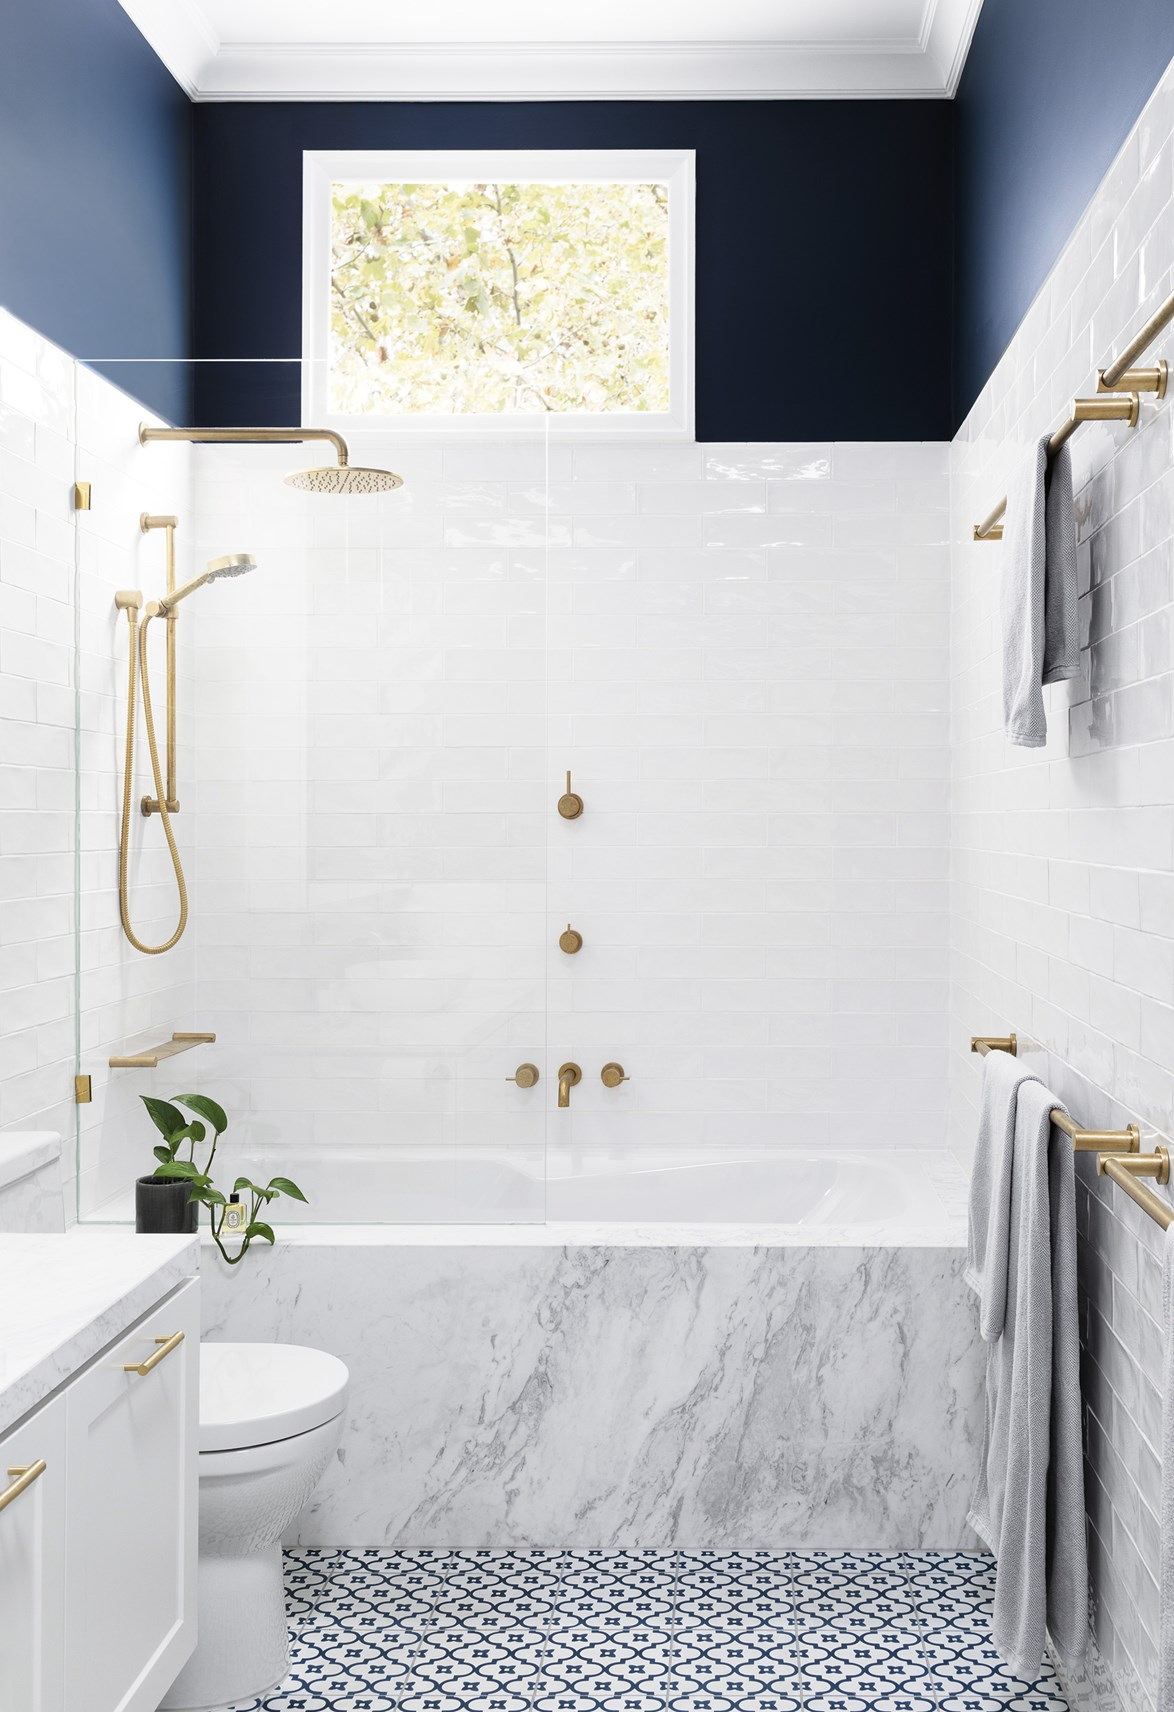 """If your existing bathroom has great bones and is structurally sound, why not opt for an all-out cosmetic overhaul? Rather than investing funds into demolishing and rebuilding, channel your precious pennies into luxurious tiles, touches of marble and brass tapware instead! Take style cues from this [clever bathroom](https://www.homestolove.com.au/15-bathrooms-with-clever-ideas-to-steal-18869